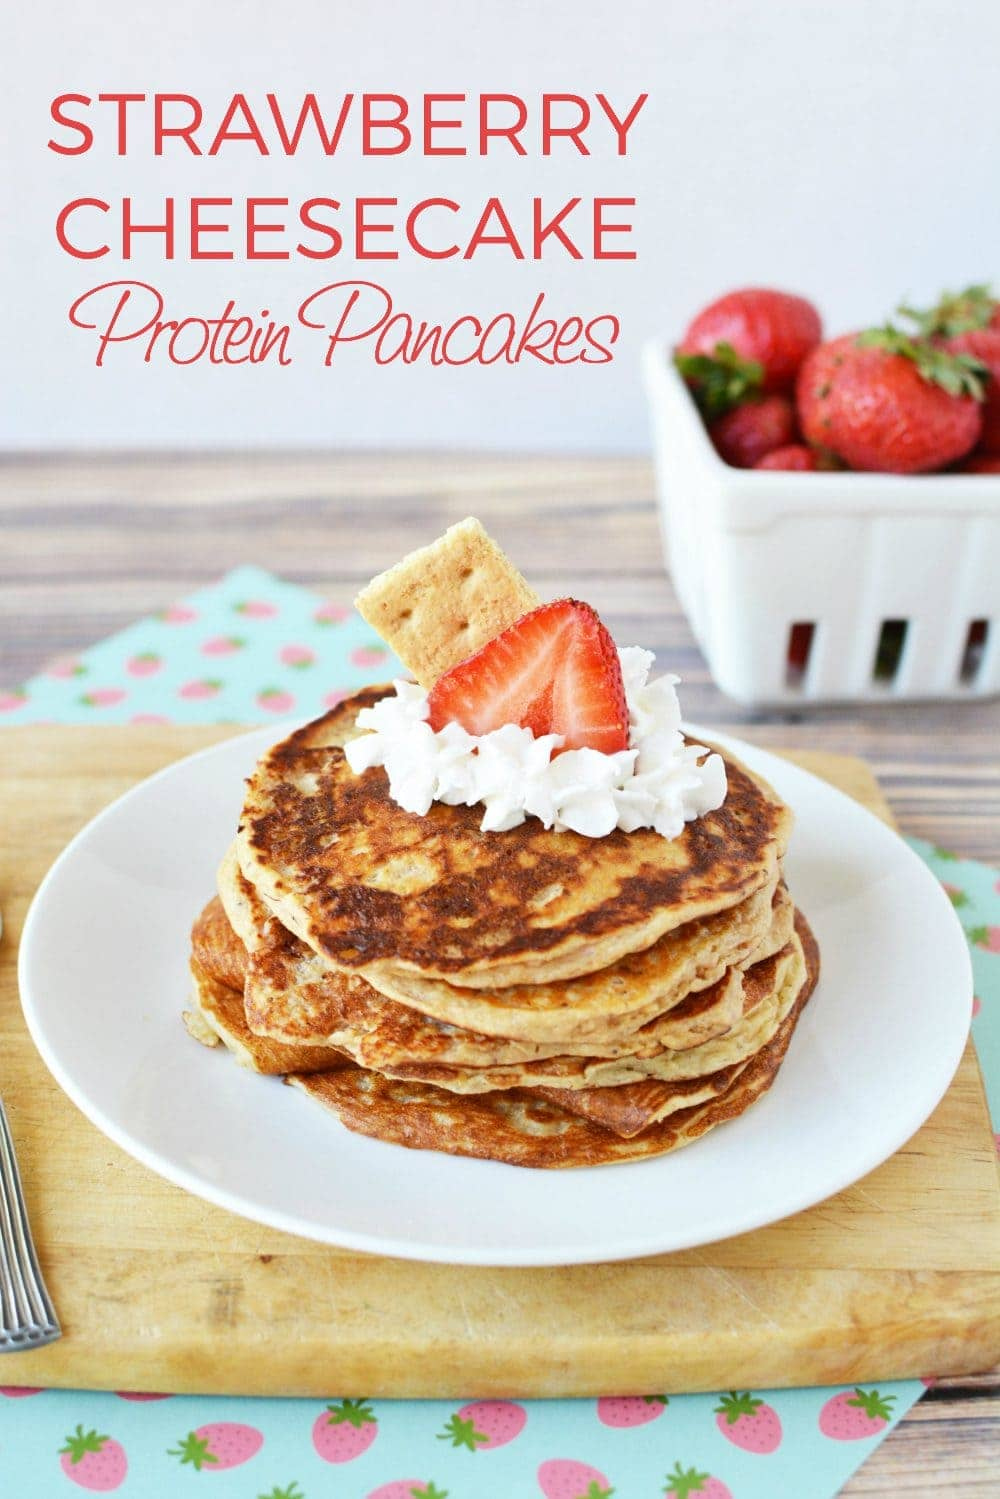 Pancakes with whipped cream and strawberry on top